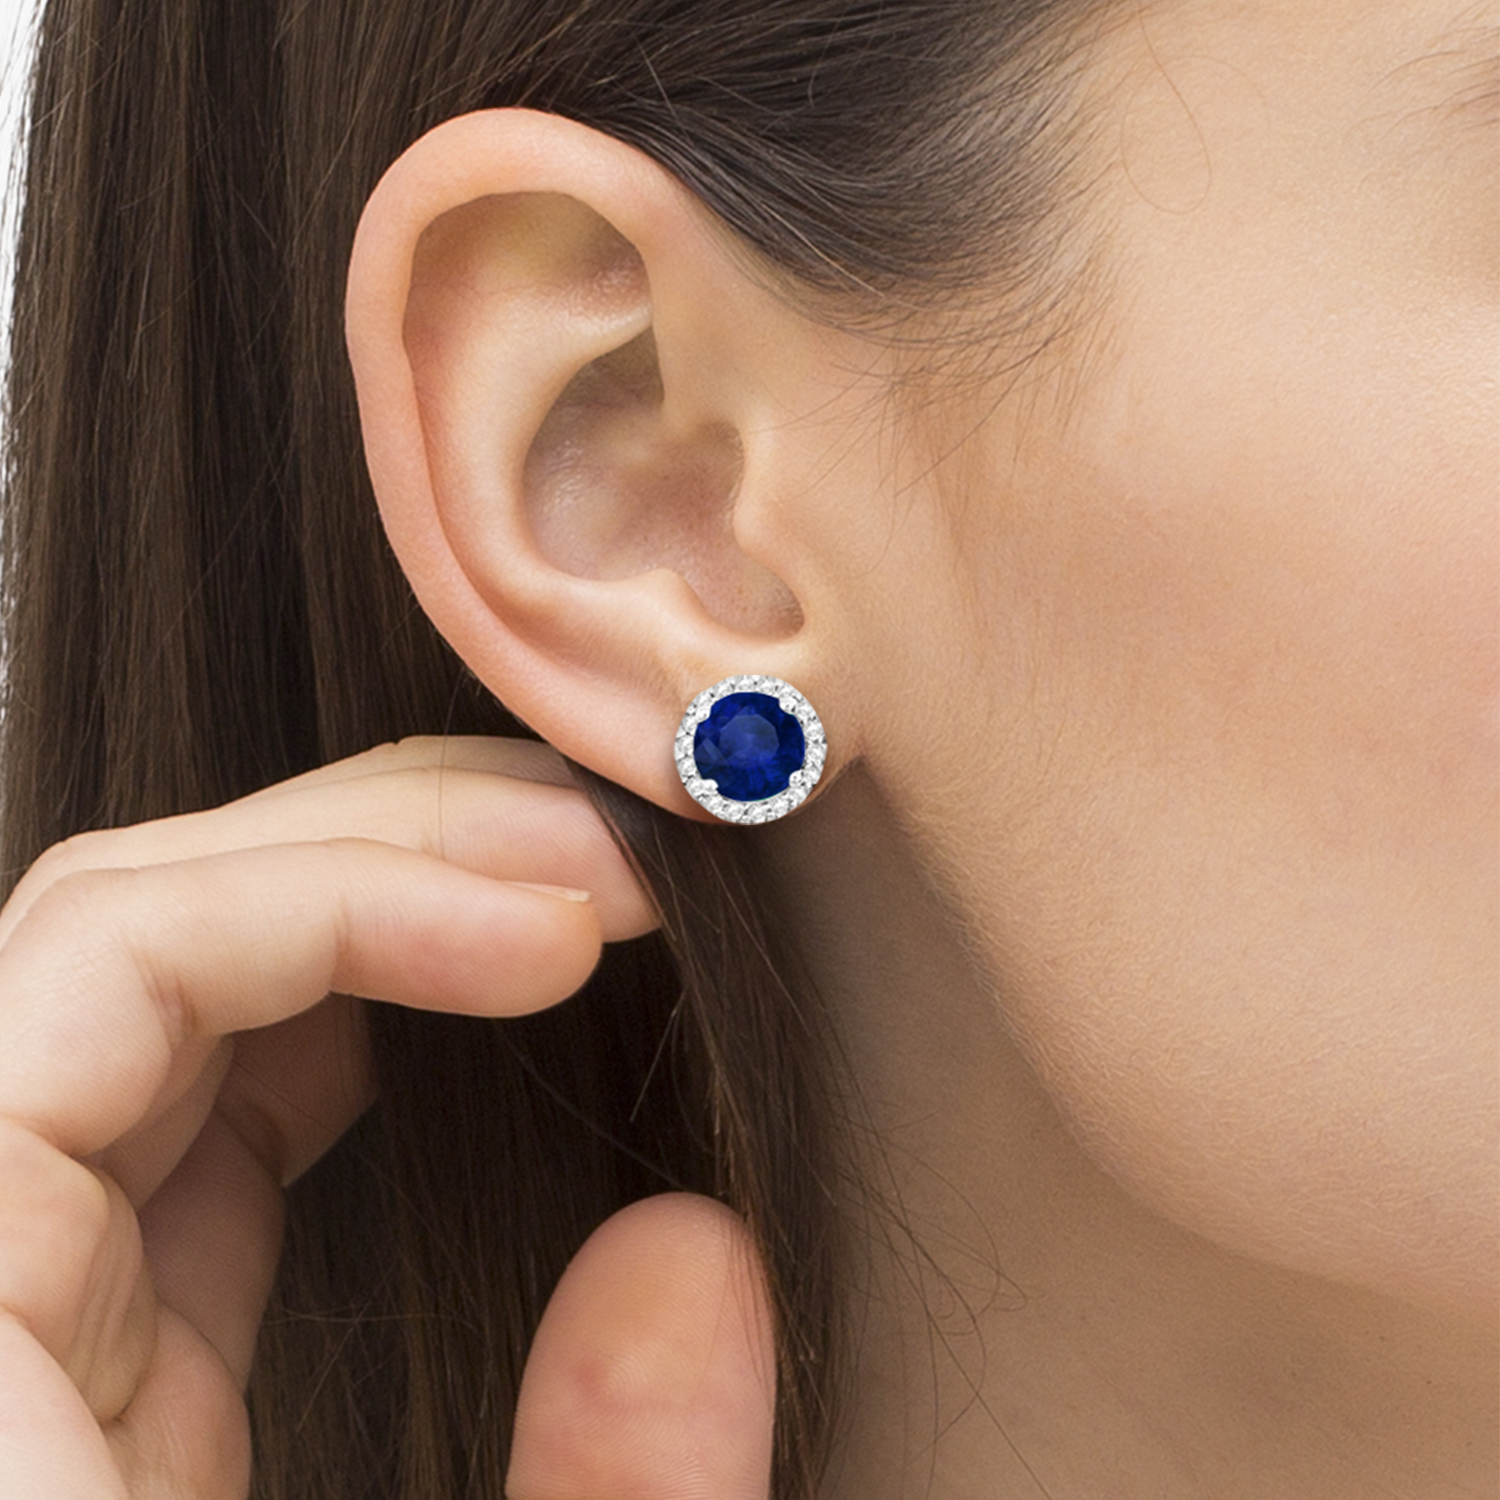 Blue Sapphire & Diamond Halo Stud Earrings in Sterling Silver 2.27ct